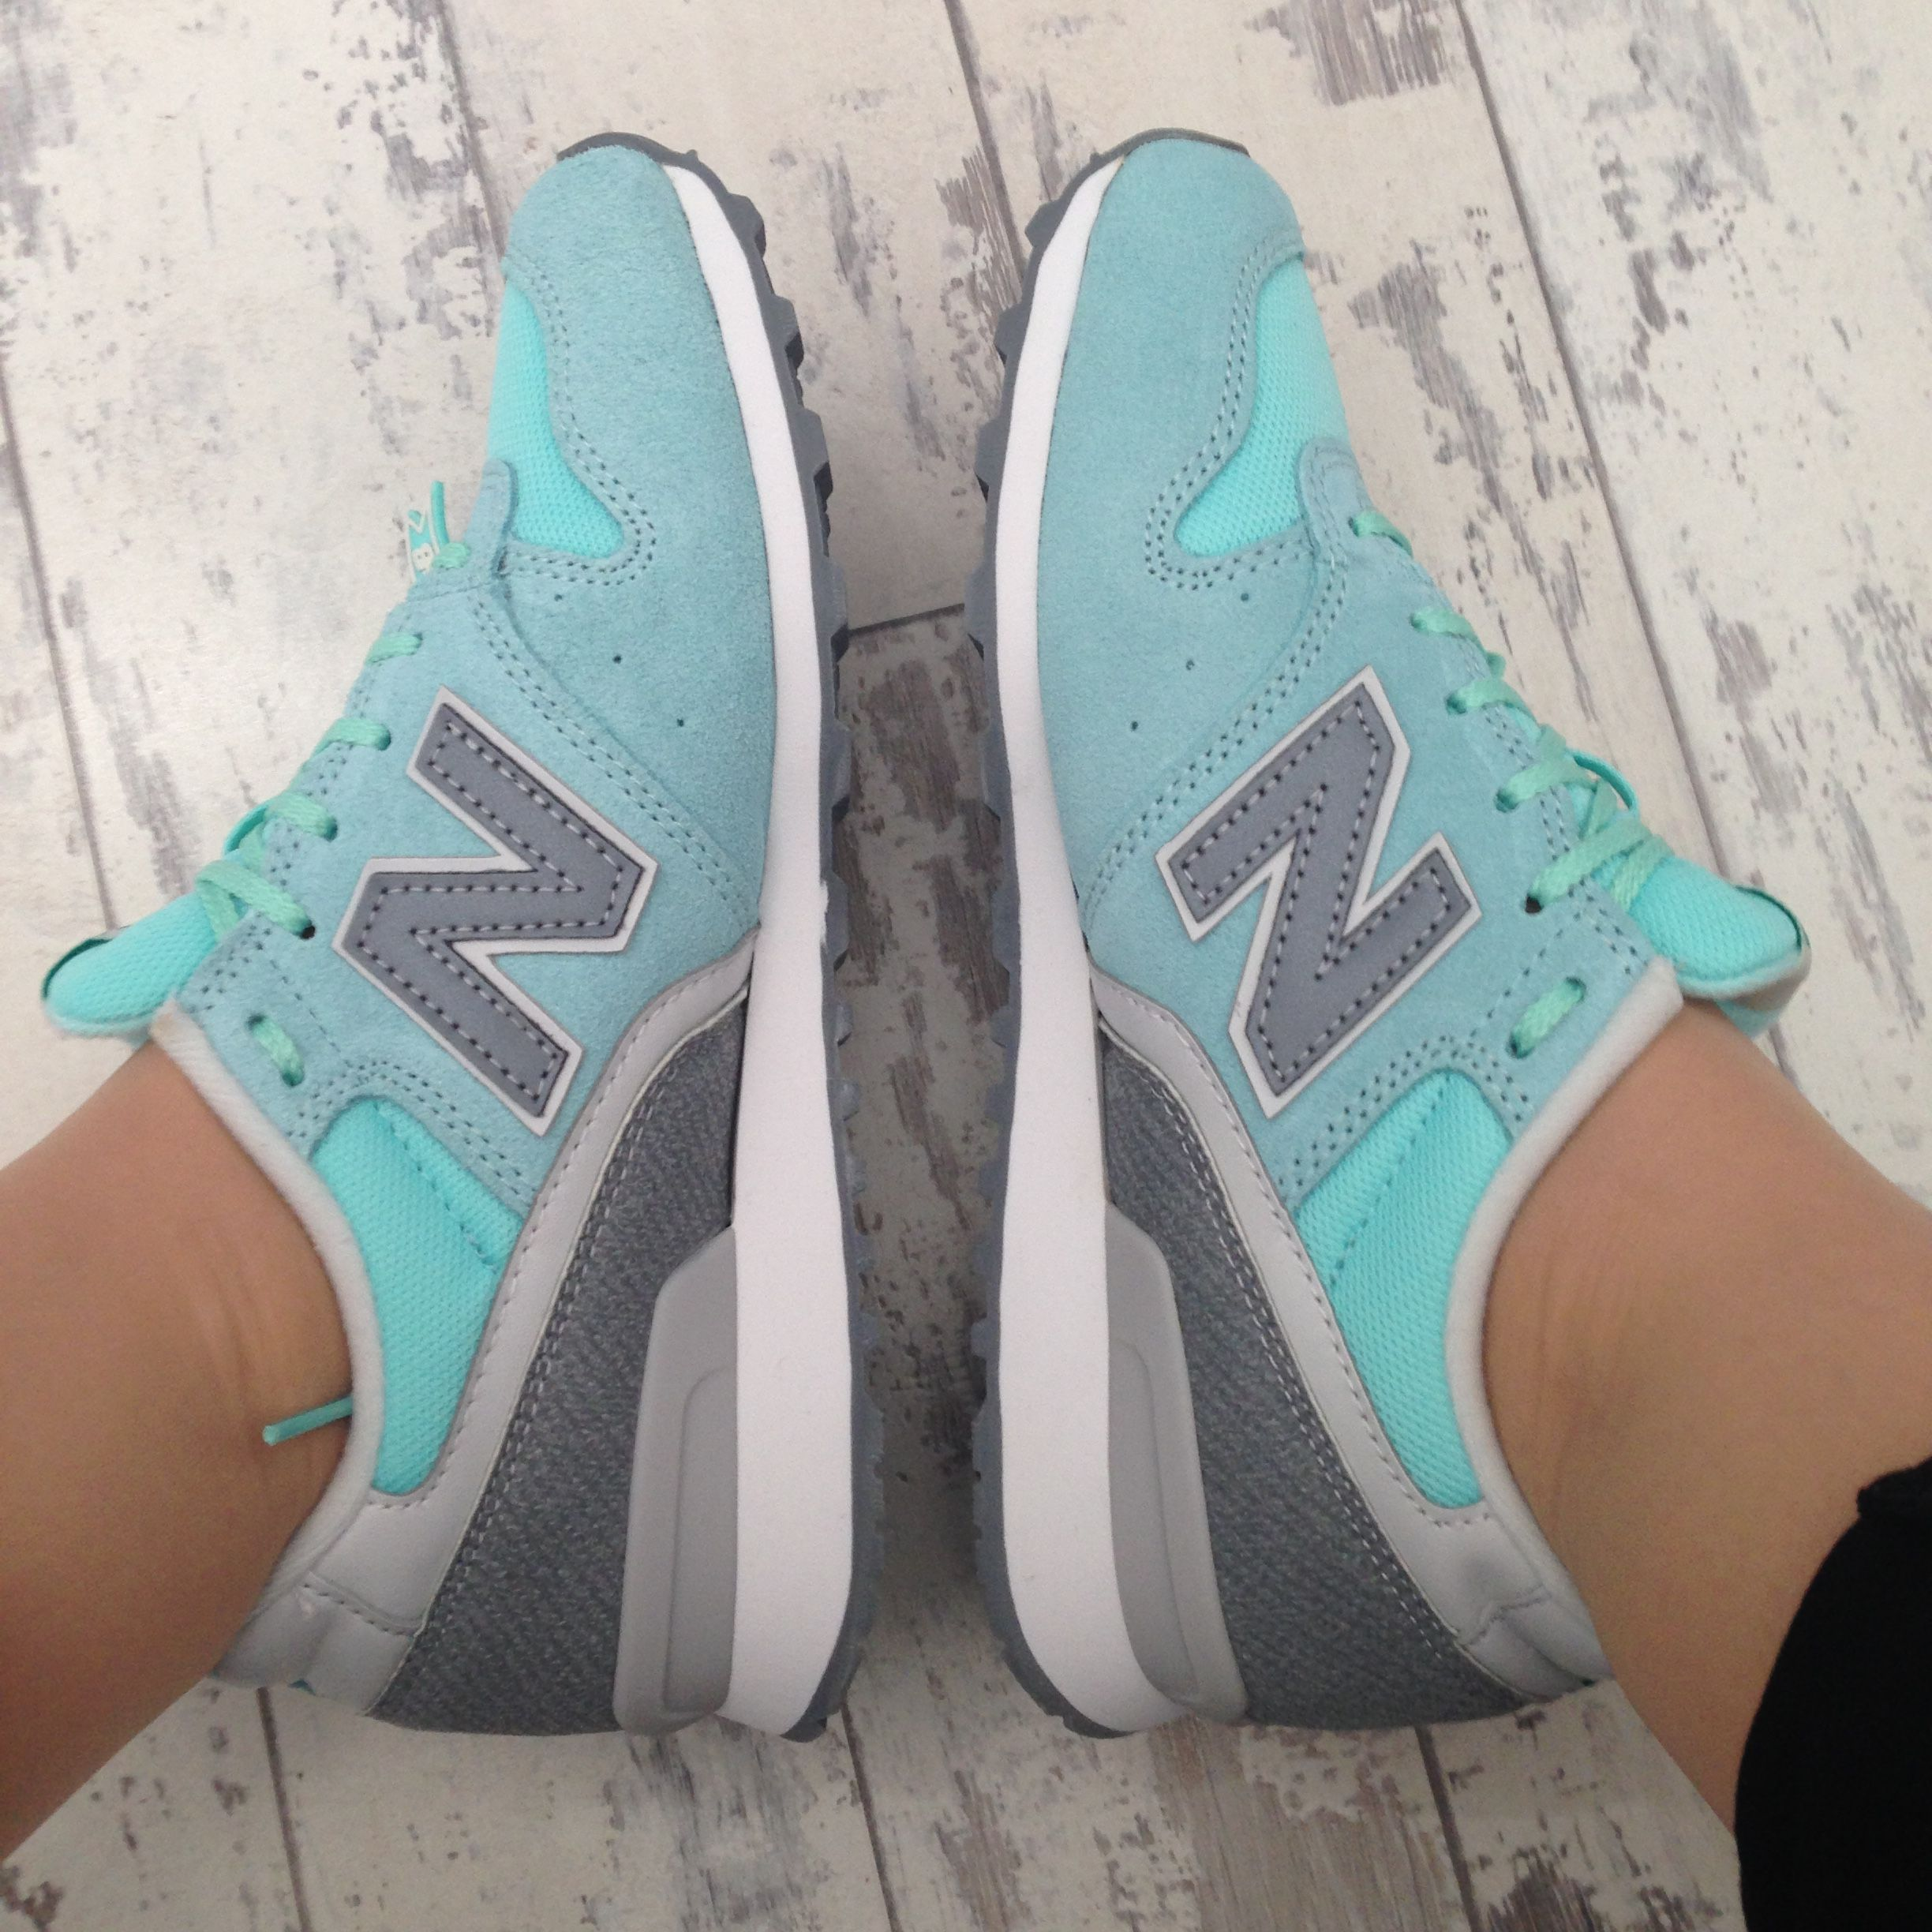 Ma new balance turquoise  #newbalance #sneakers #baskets